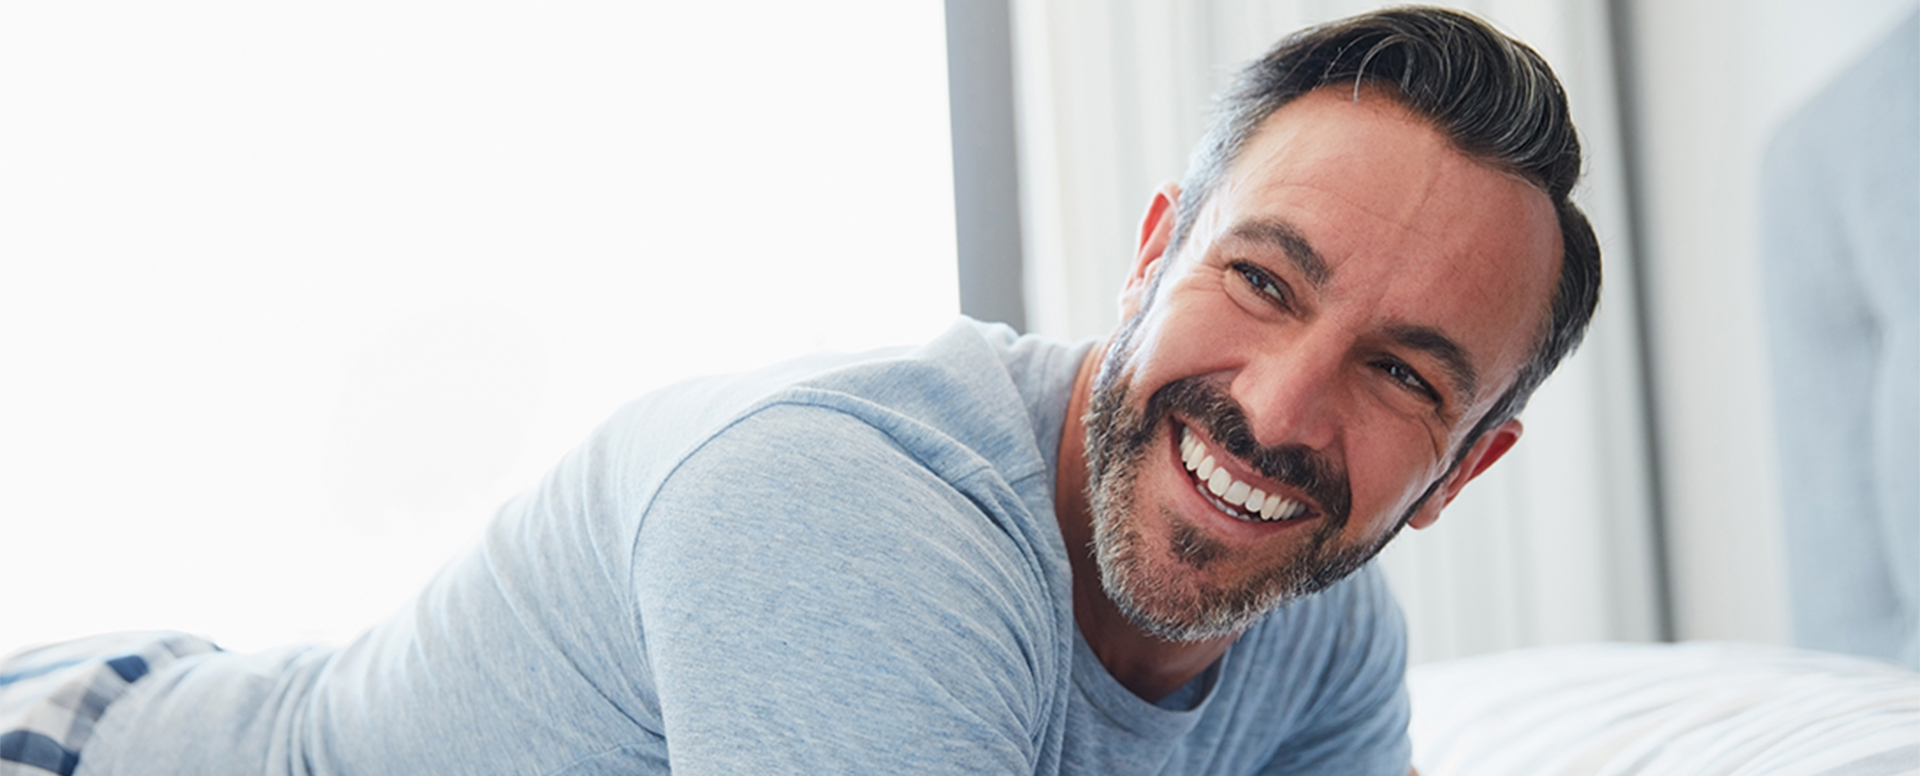 man smiling on bed